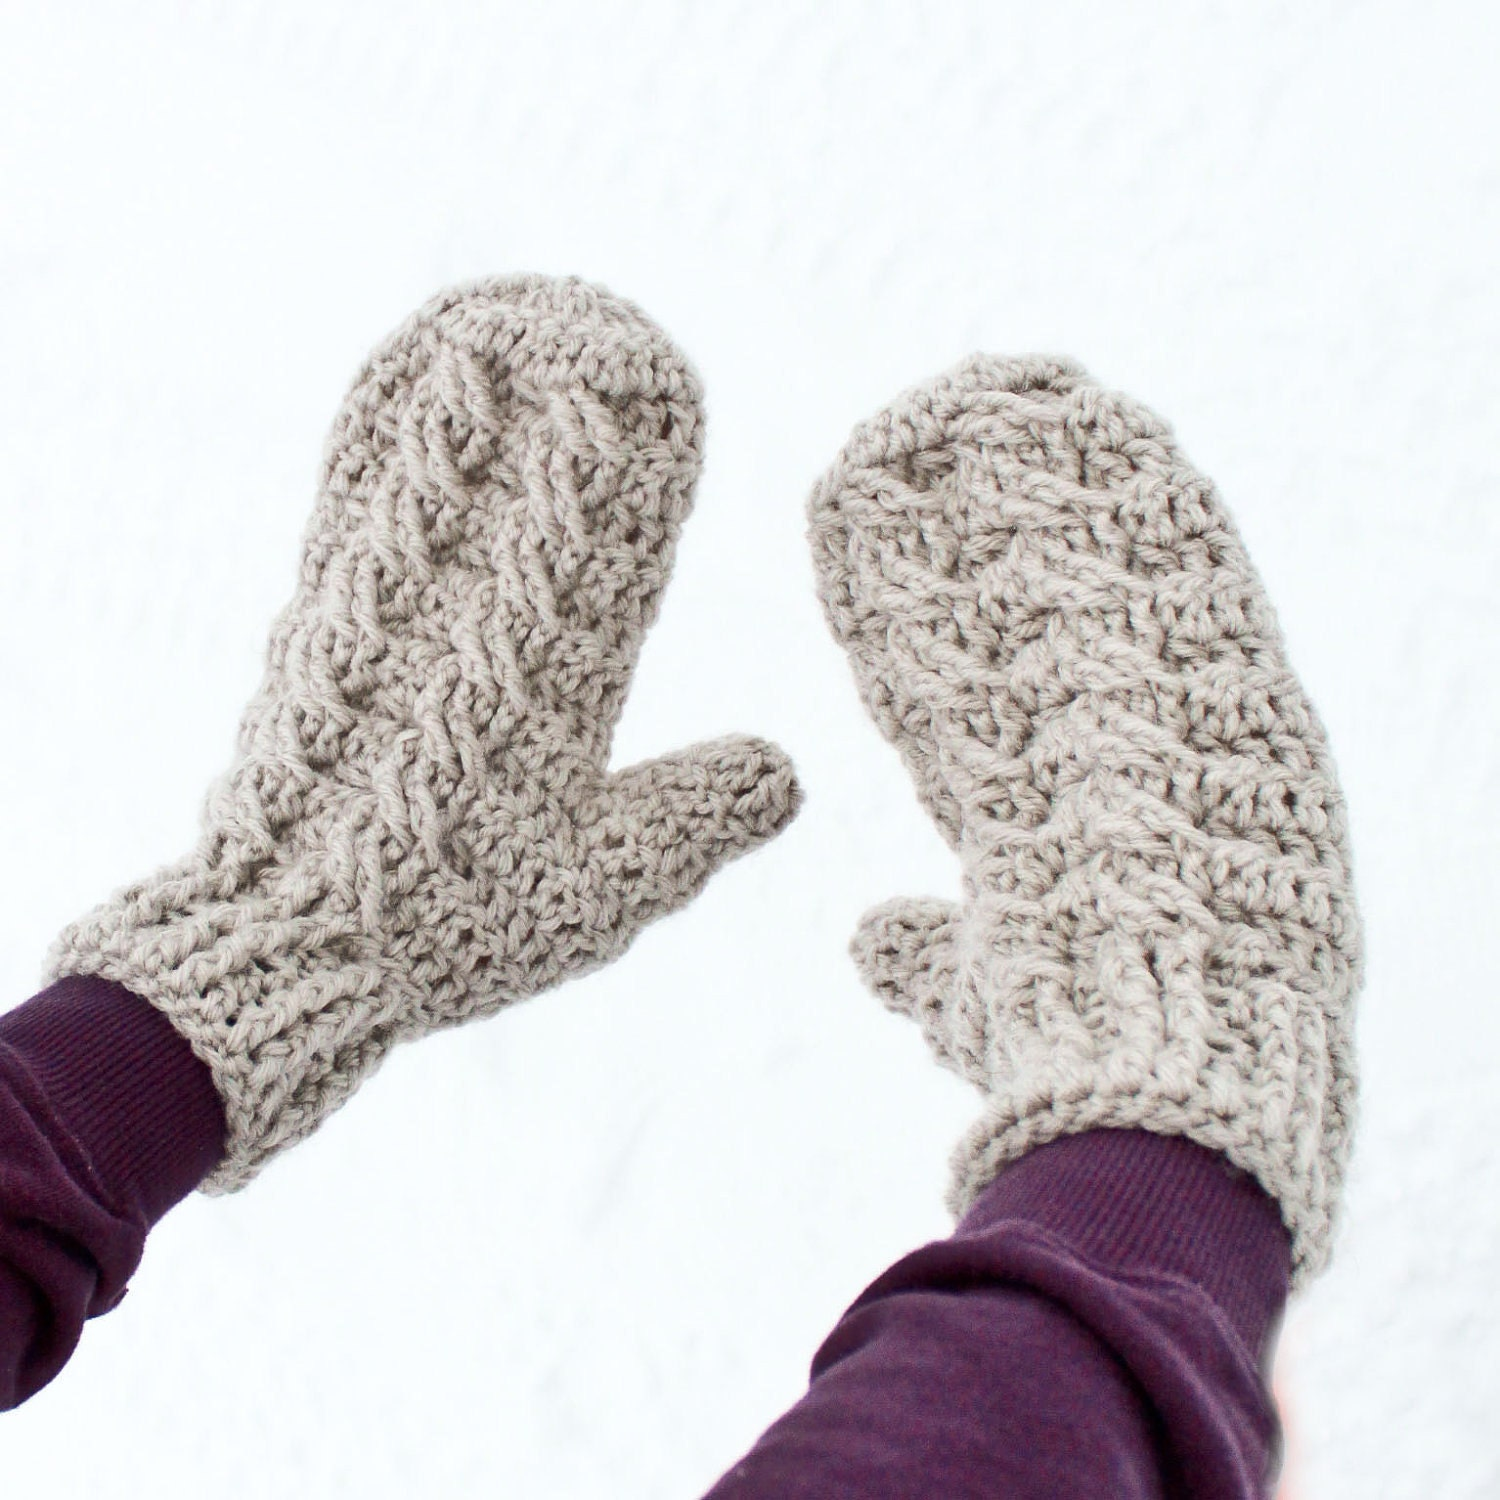 Crocheting Mittens : Instant Download Crochet Pattern Cable Mittens and by Mamachee